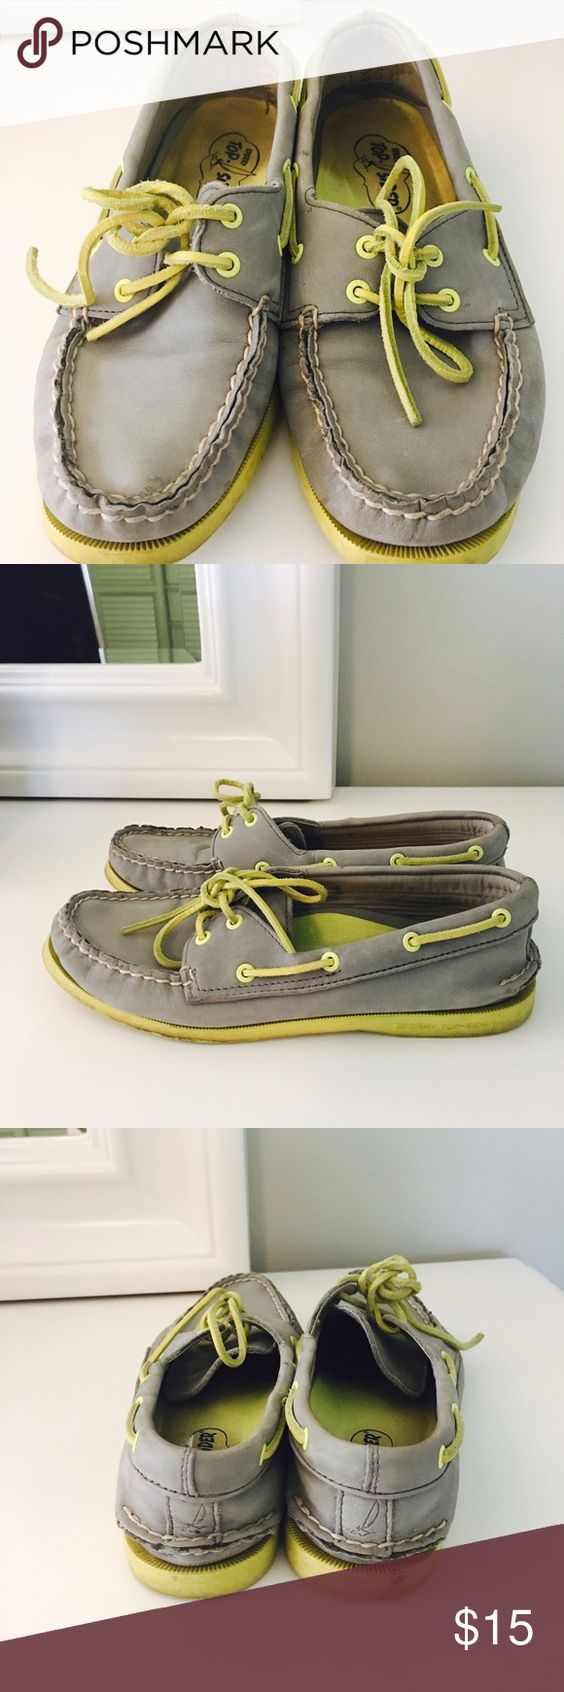 Special edition sperry's 🎏🎏🎊 Worn twice this summer 🎏🎏 Sperry Top-Sider Shoes